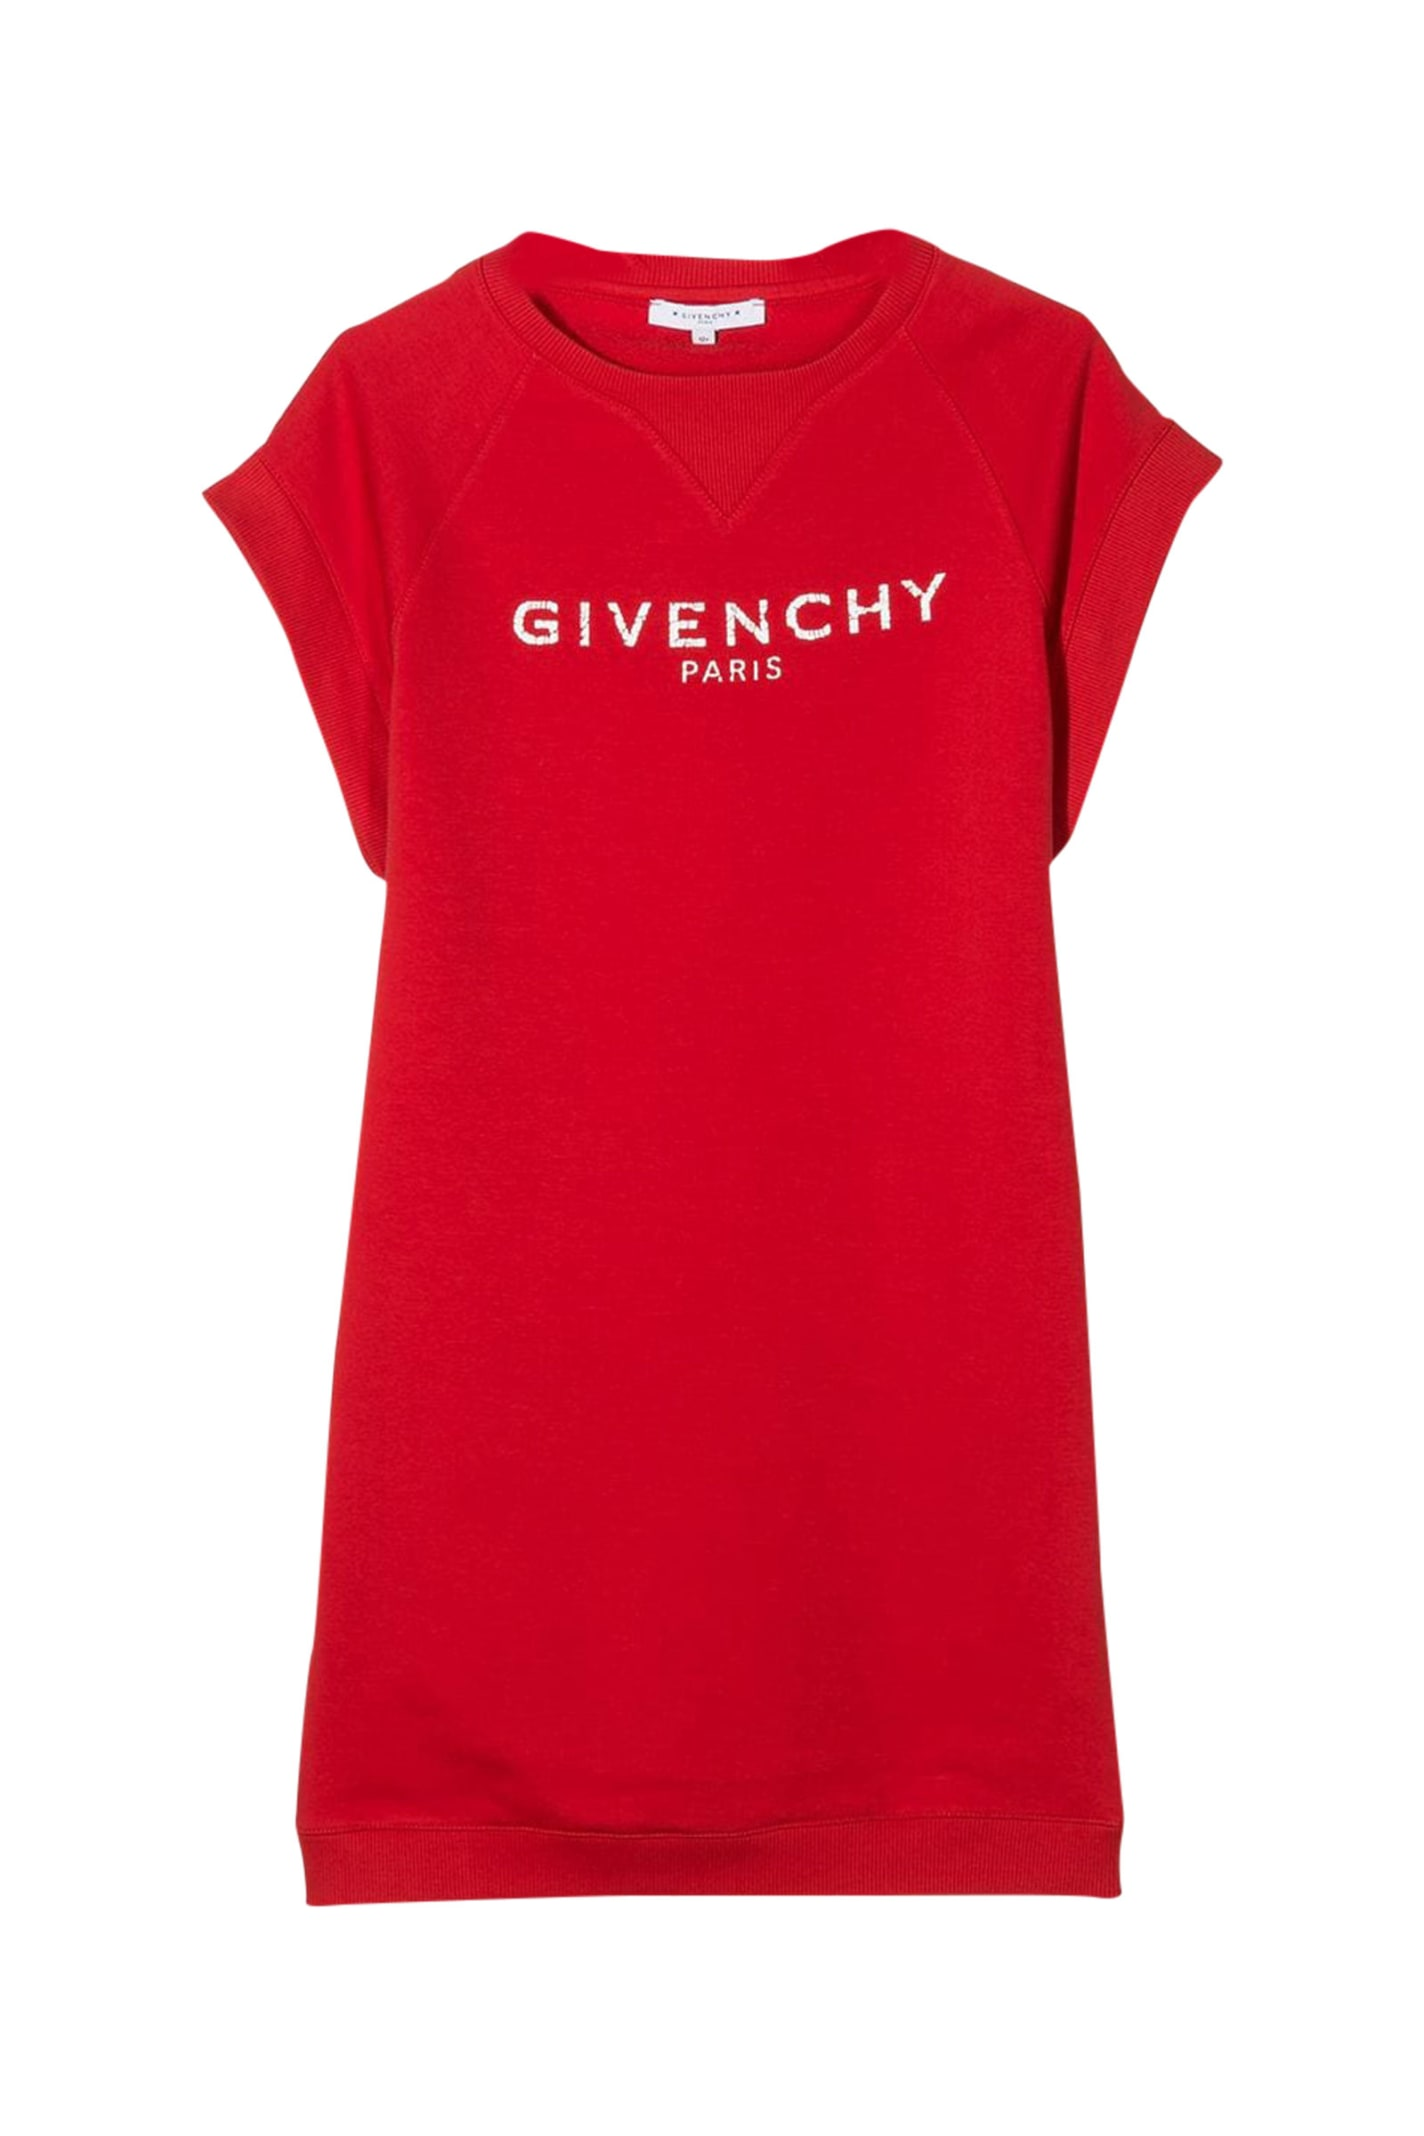 Buy Givenchy Kids Dress With Logo online, shop Givenchy with free shipping